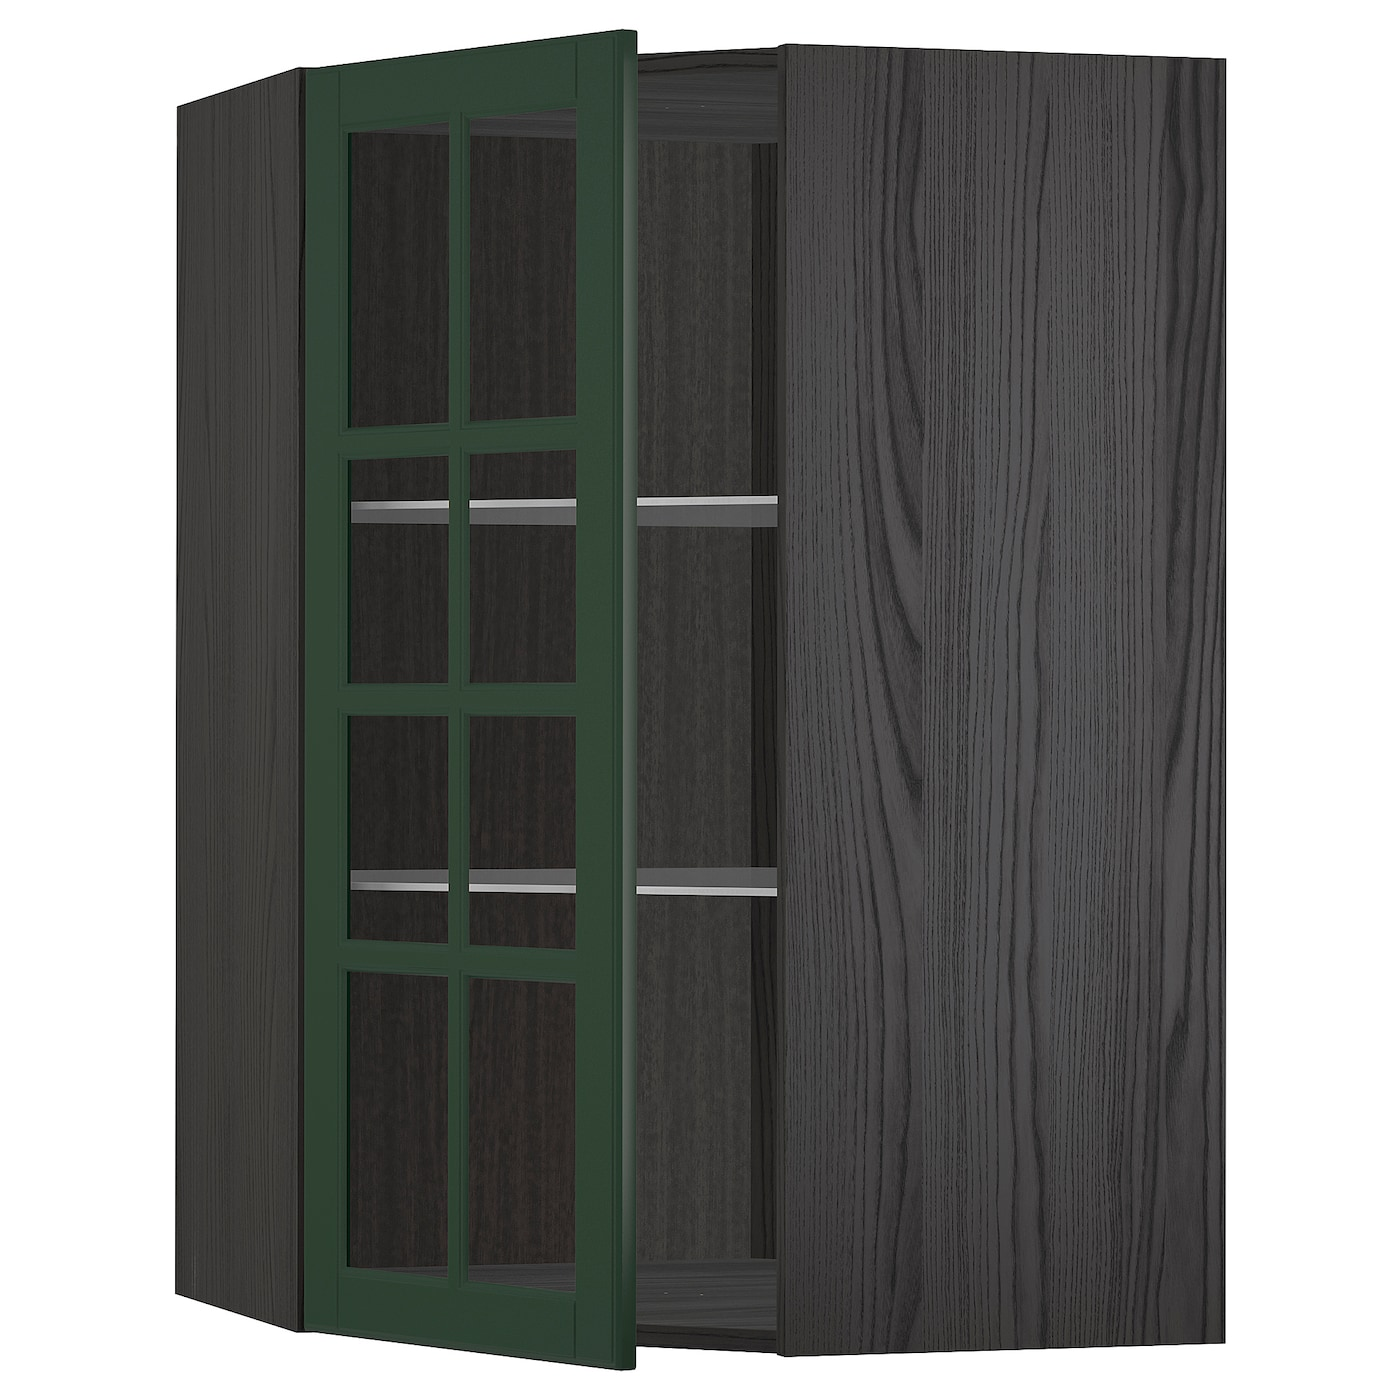 METOD black, Bodbyn dark green, Corner wall cab w shelves ...